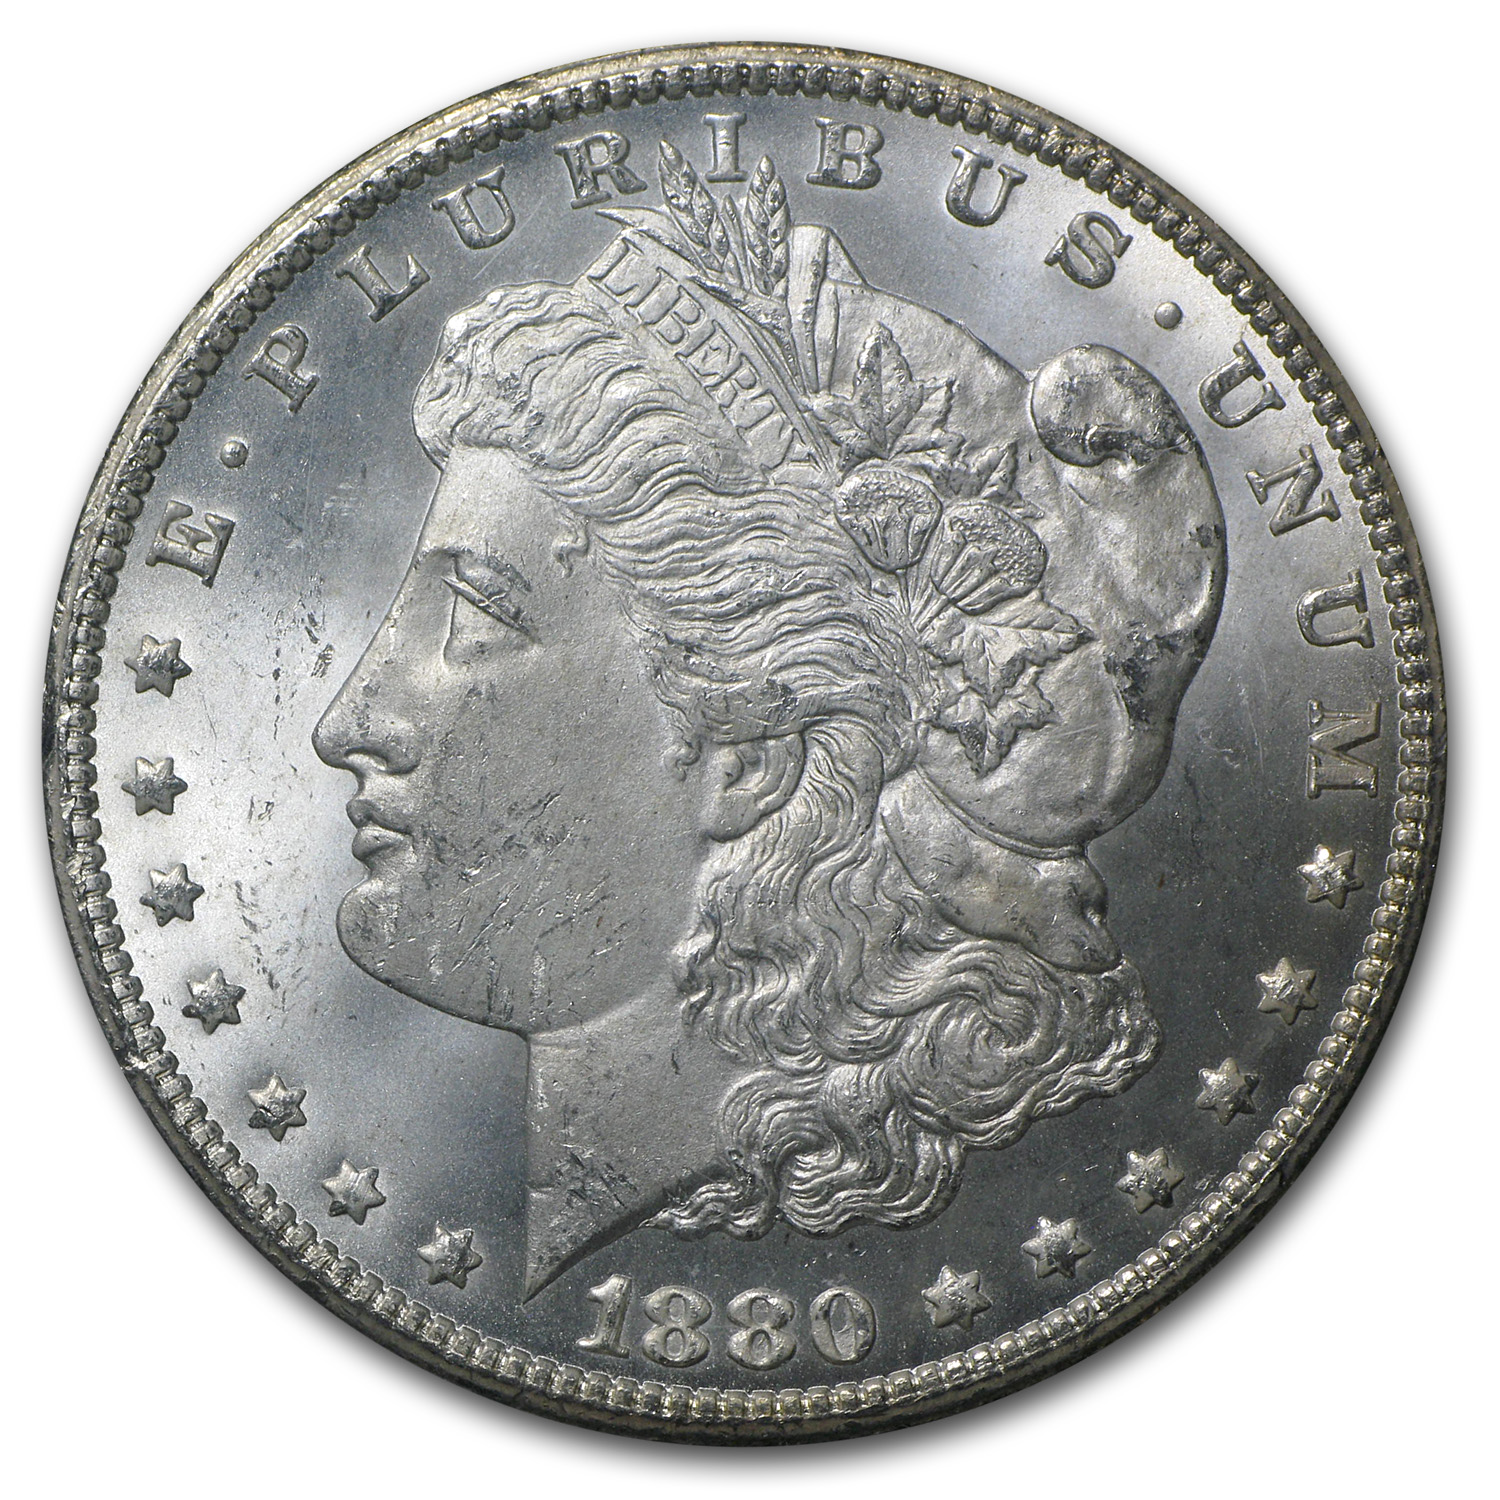 1880-CC Rev of 78 Morgan Dollar MS-64 NGC (Beautiful Toning, GSA)